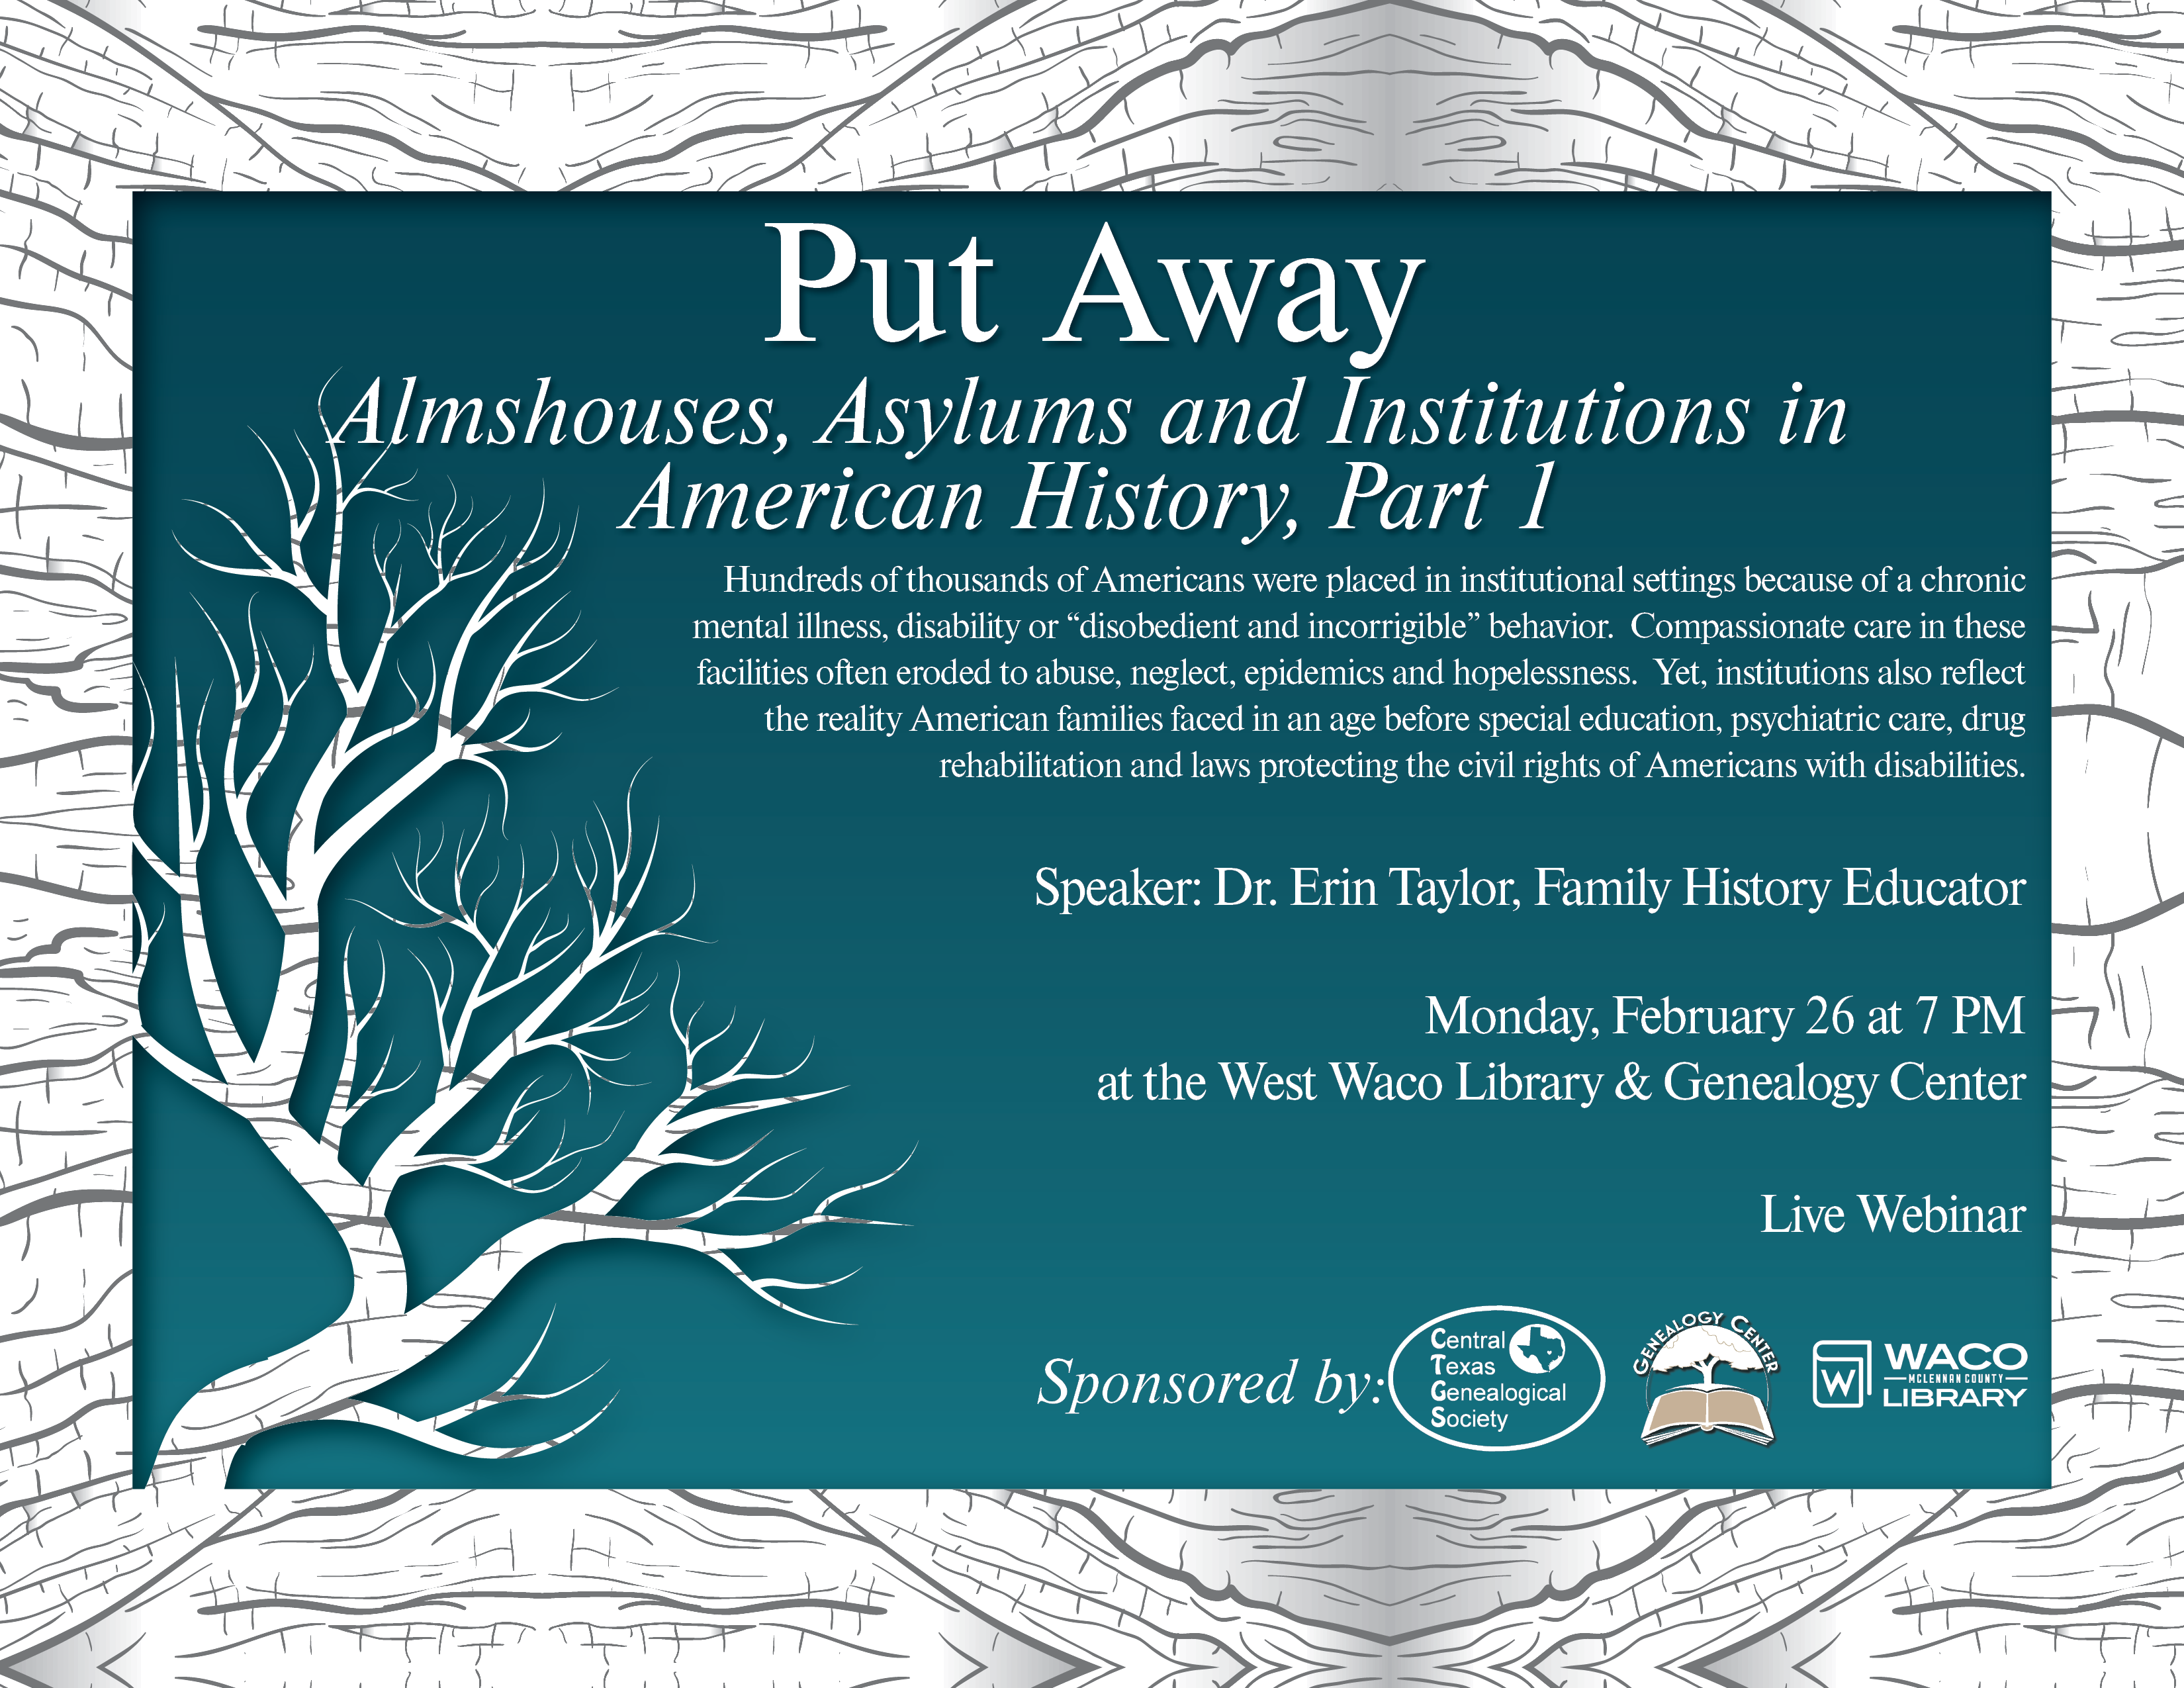 Put Away: Almshouses, Asylums and Institutions in American History, Part I